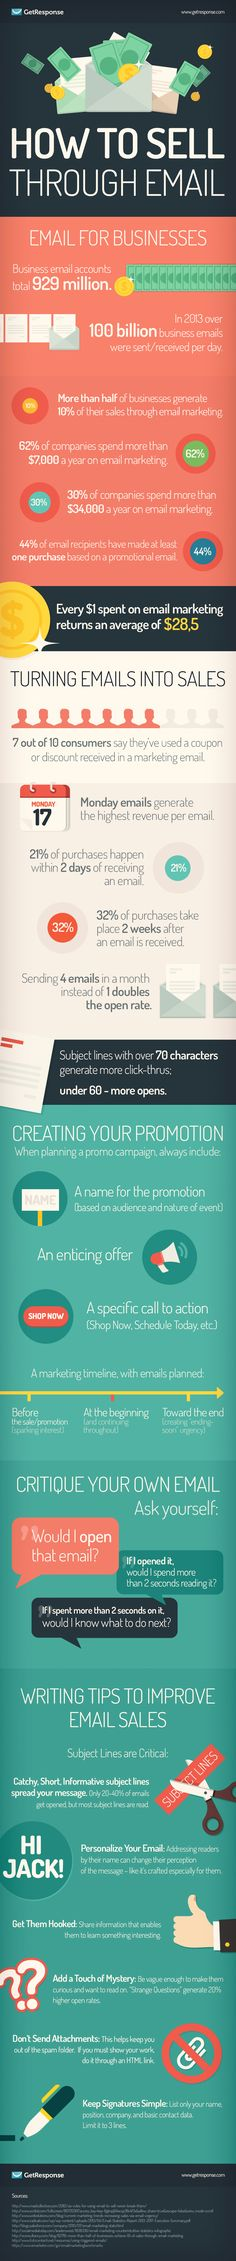 #Howto Sell Through Email #Marketing #Infographic. Via http://blog.getresponse.com You know it's never too late to start your own profitable internet marketing business. Find out more at http://www.socialmediamarketingstepbystep.co.uk